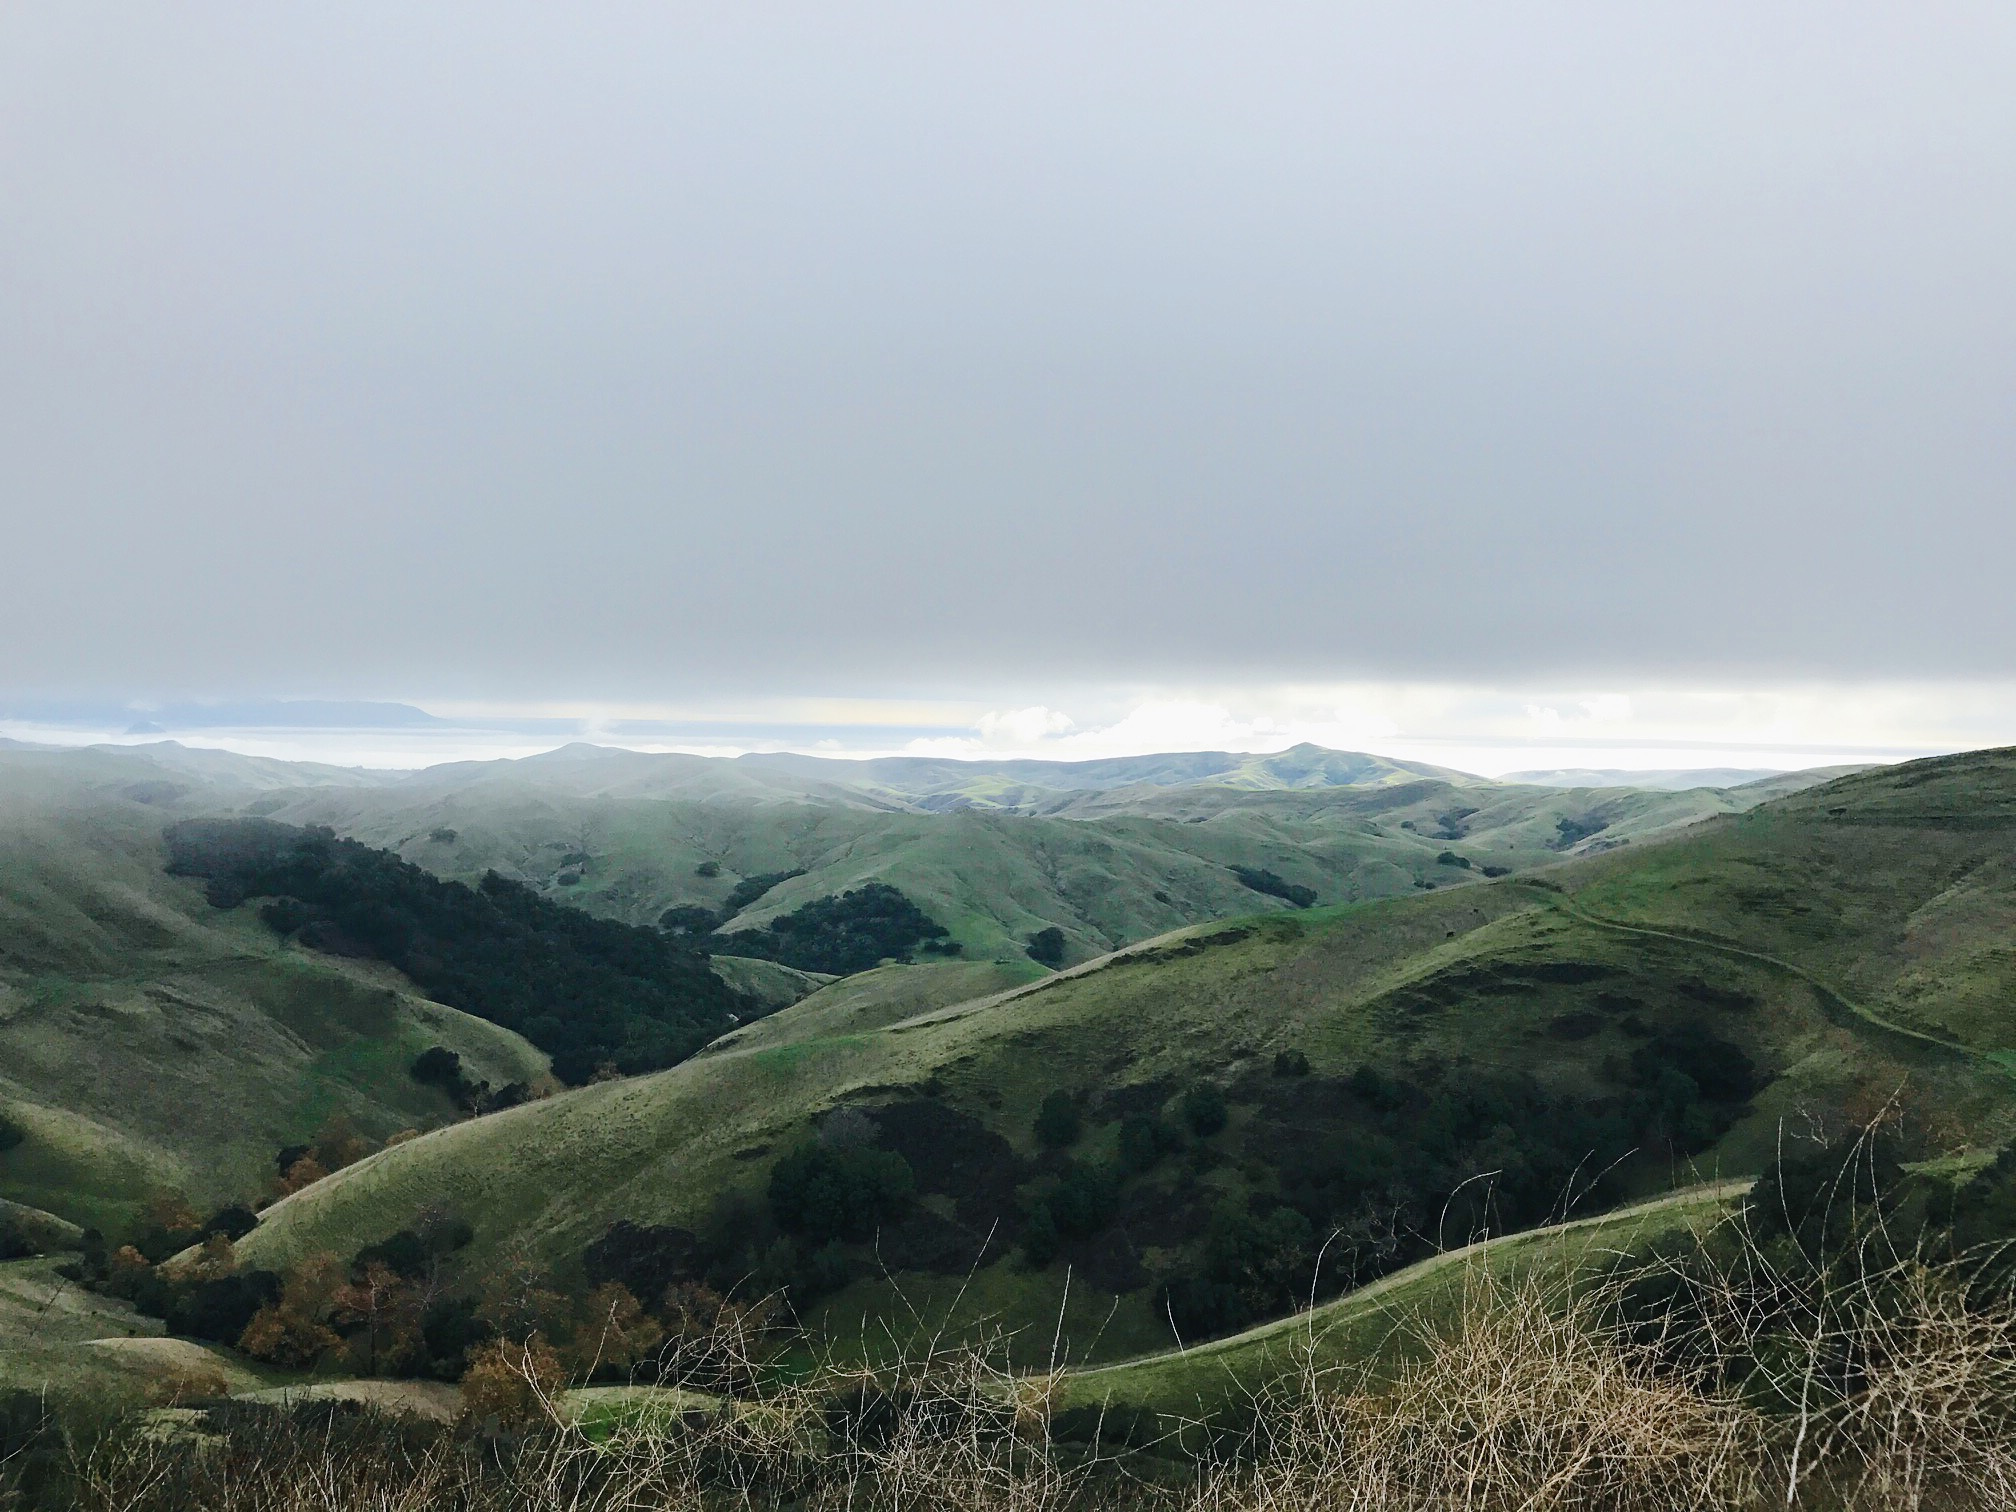 View above Cambria from HWY 46